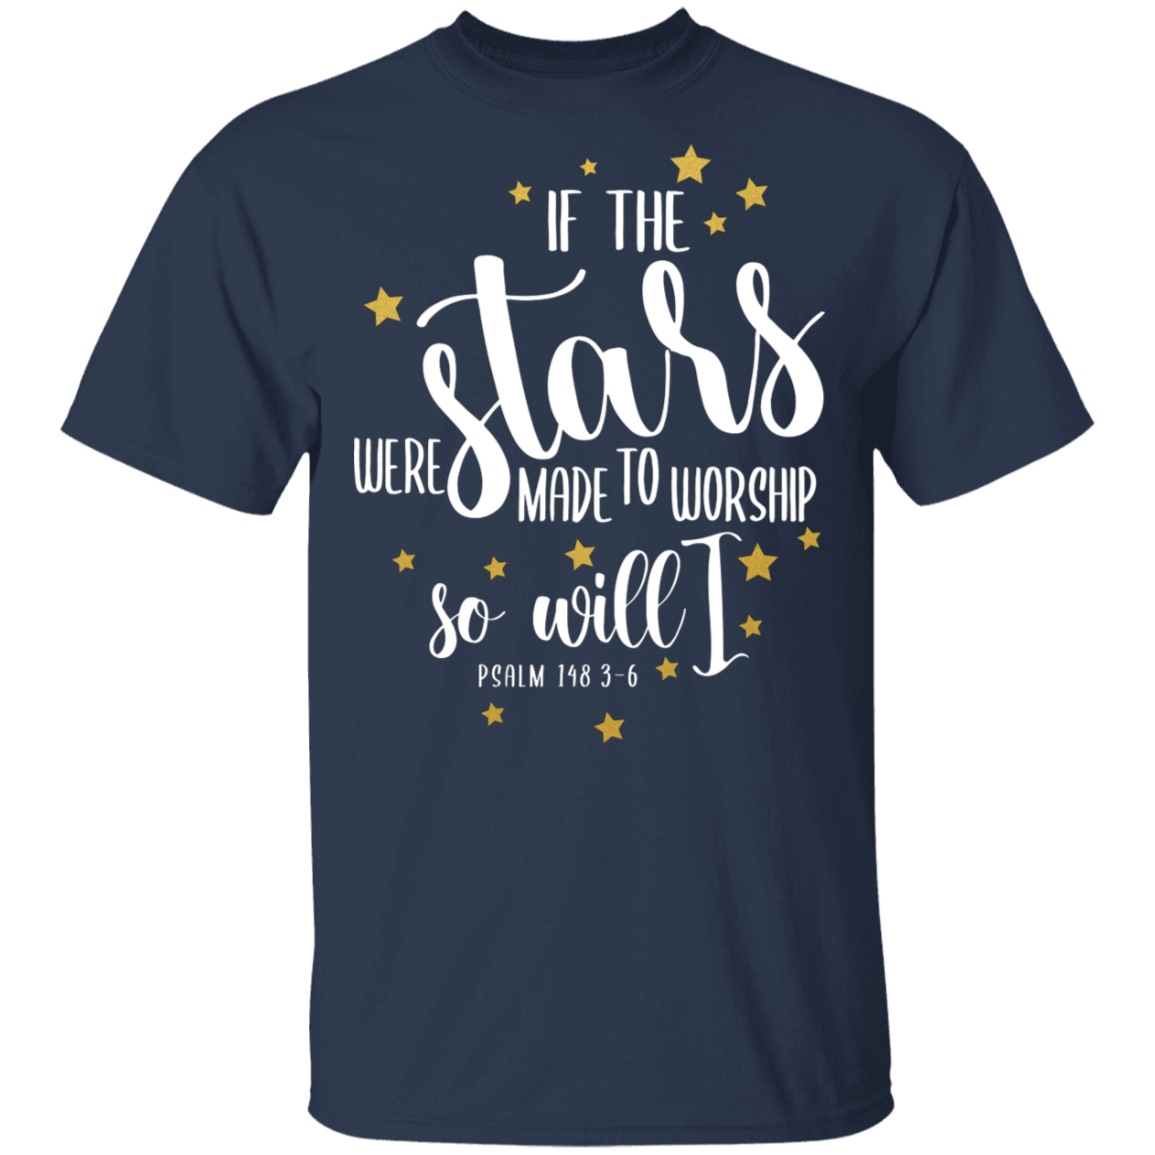 If the Stars - T-Shirt - My Christian Shop